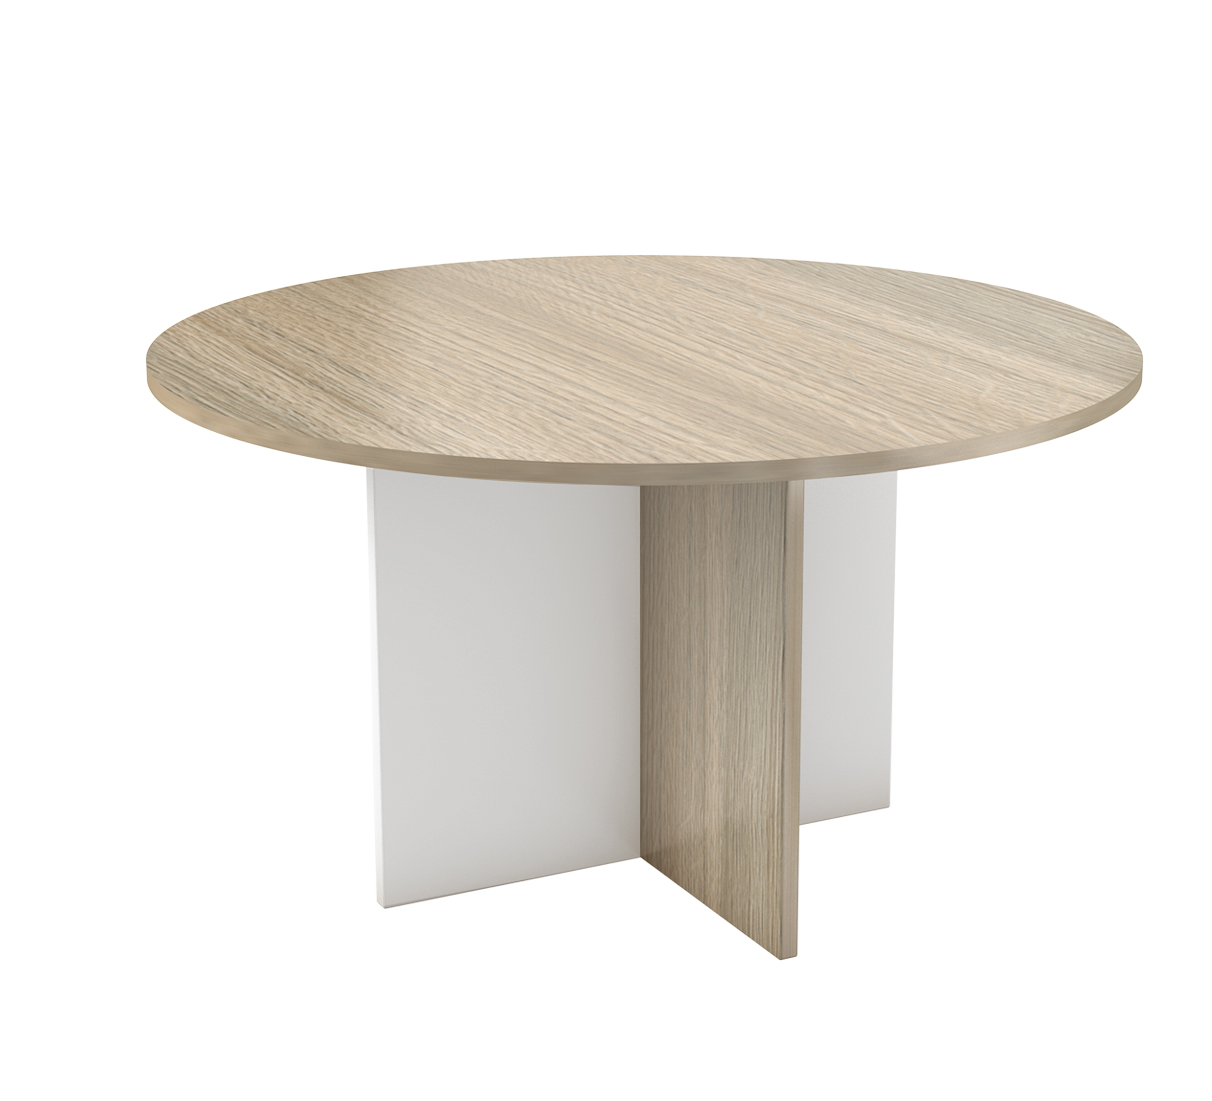 Round Table With Cross Based Legs Available In Melamine